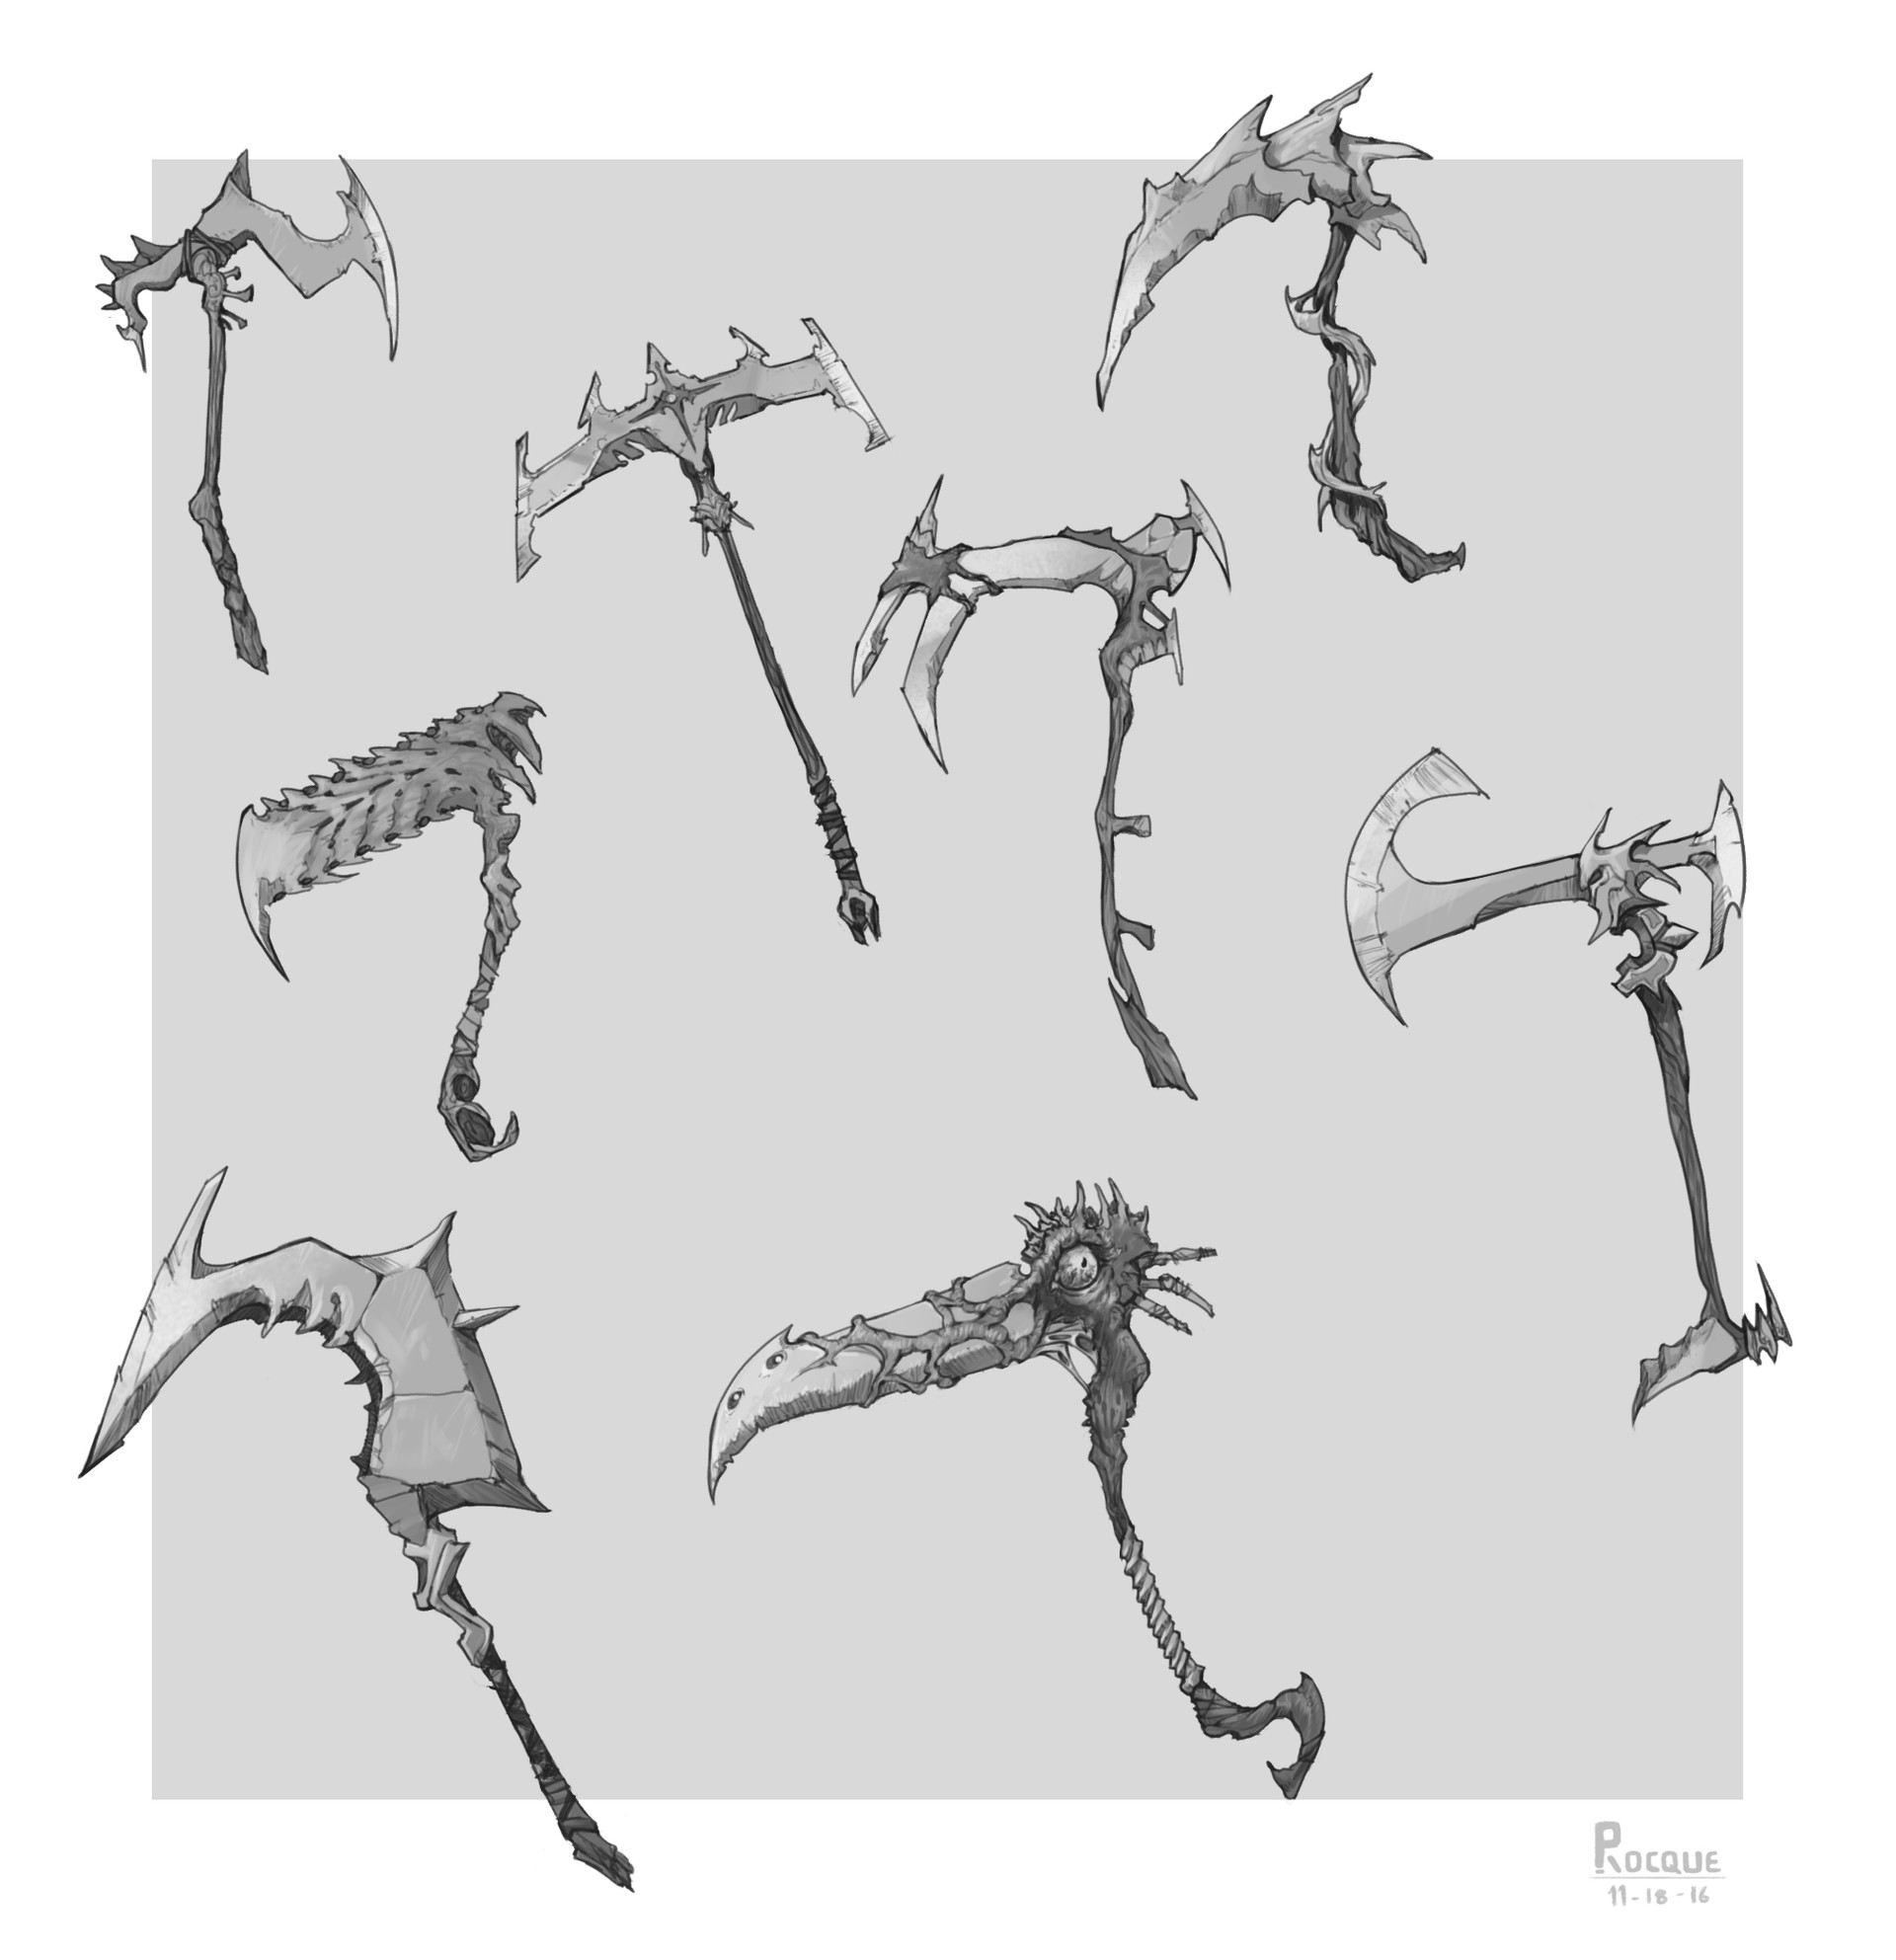 Peter rocque weapons scyth designs